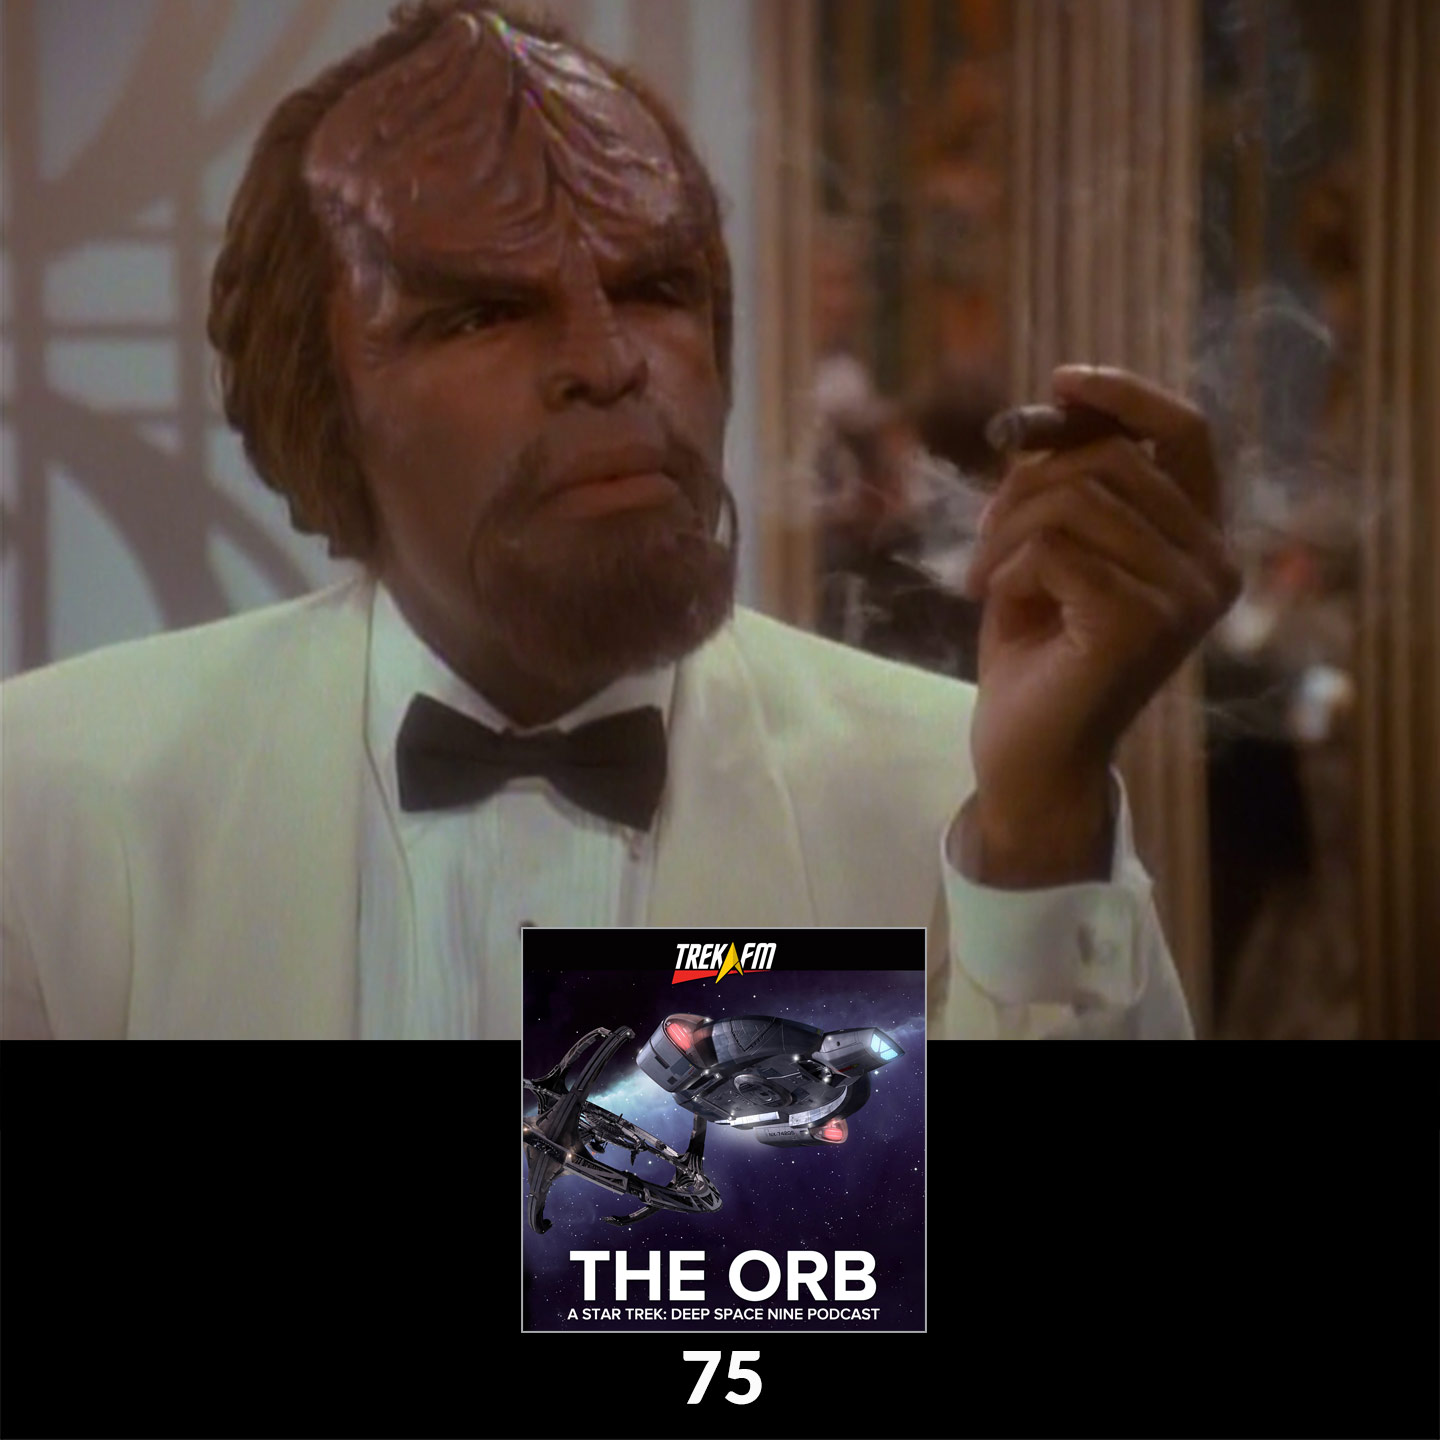 The Orb 75: The One Where Earl Grey Talks DS9